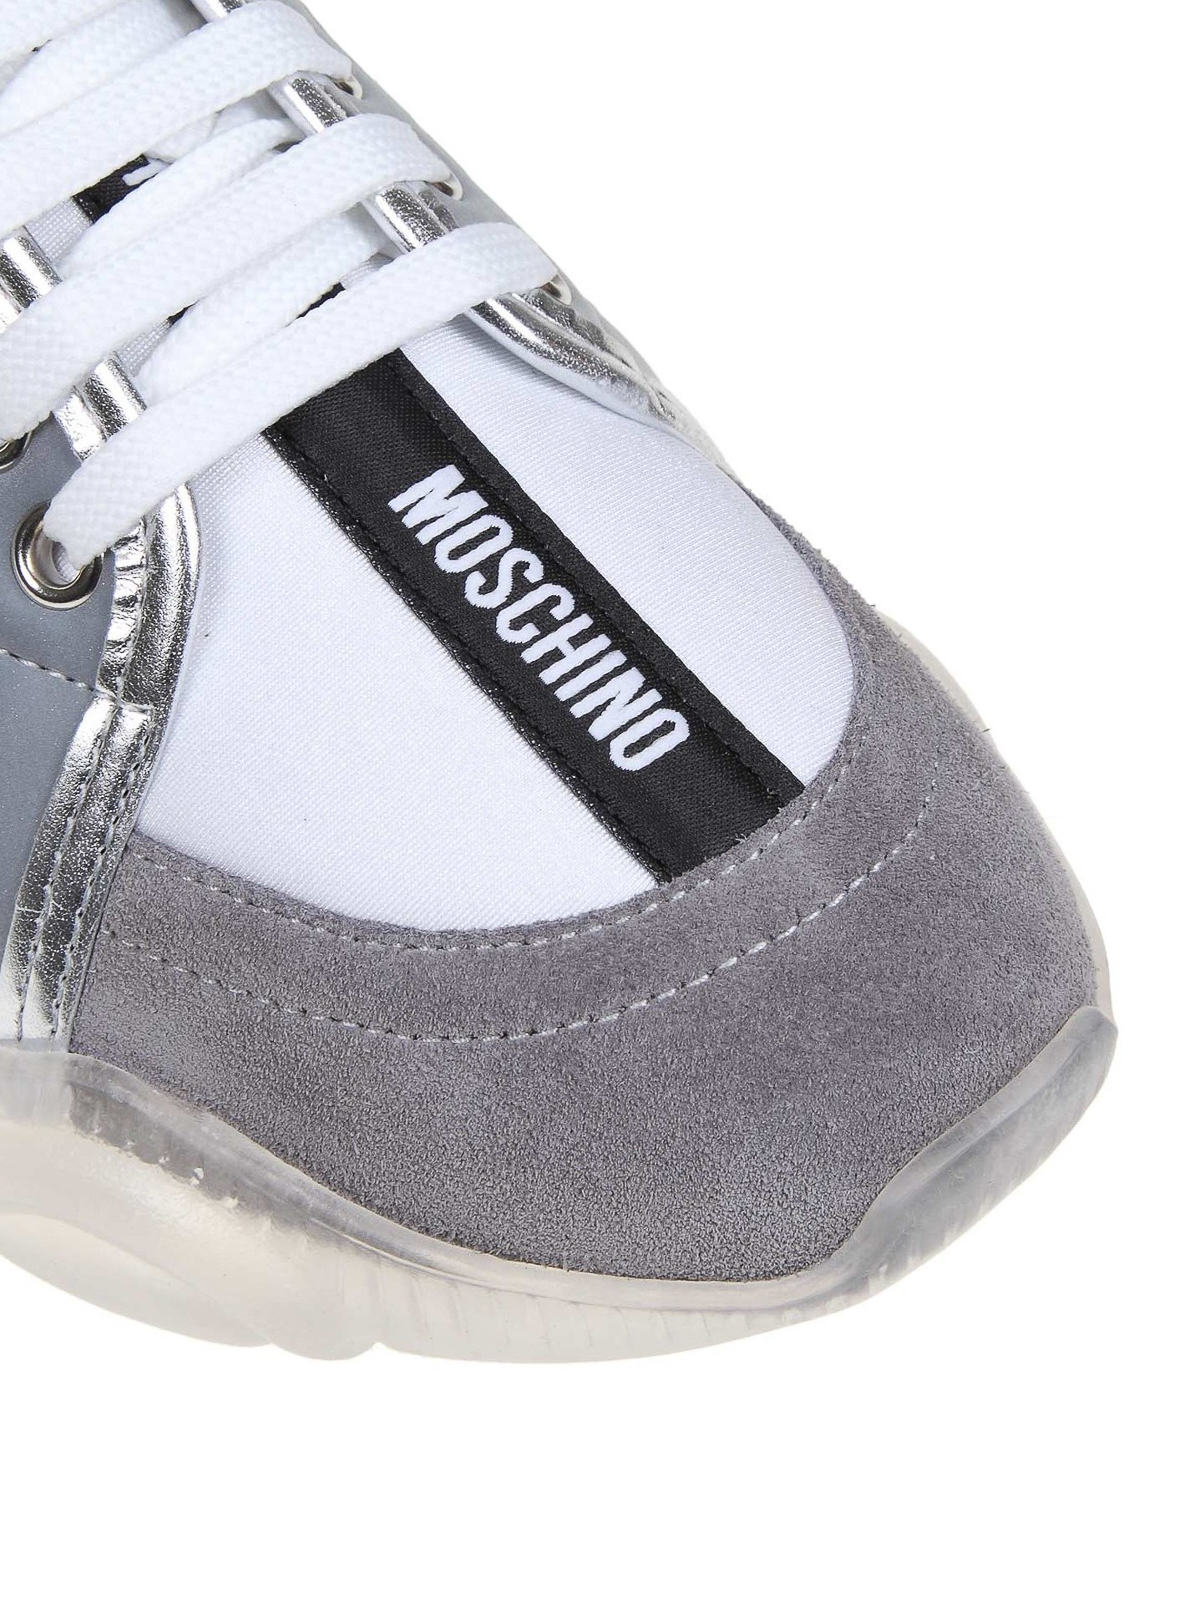 Teddy Run white and grey sneakers